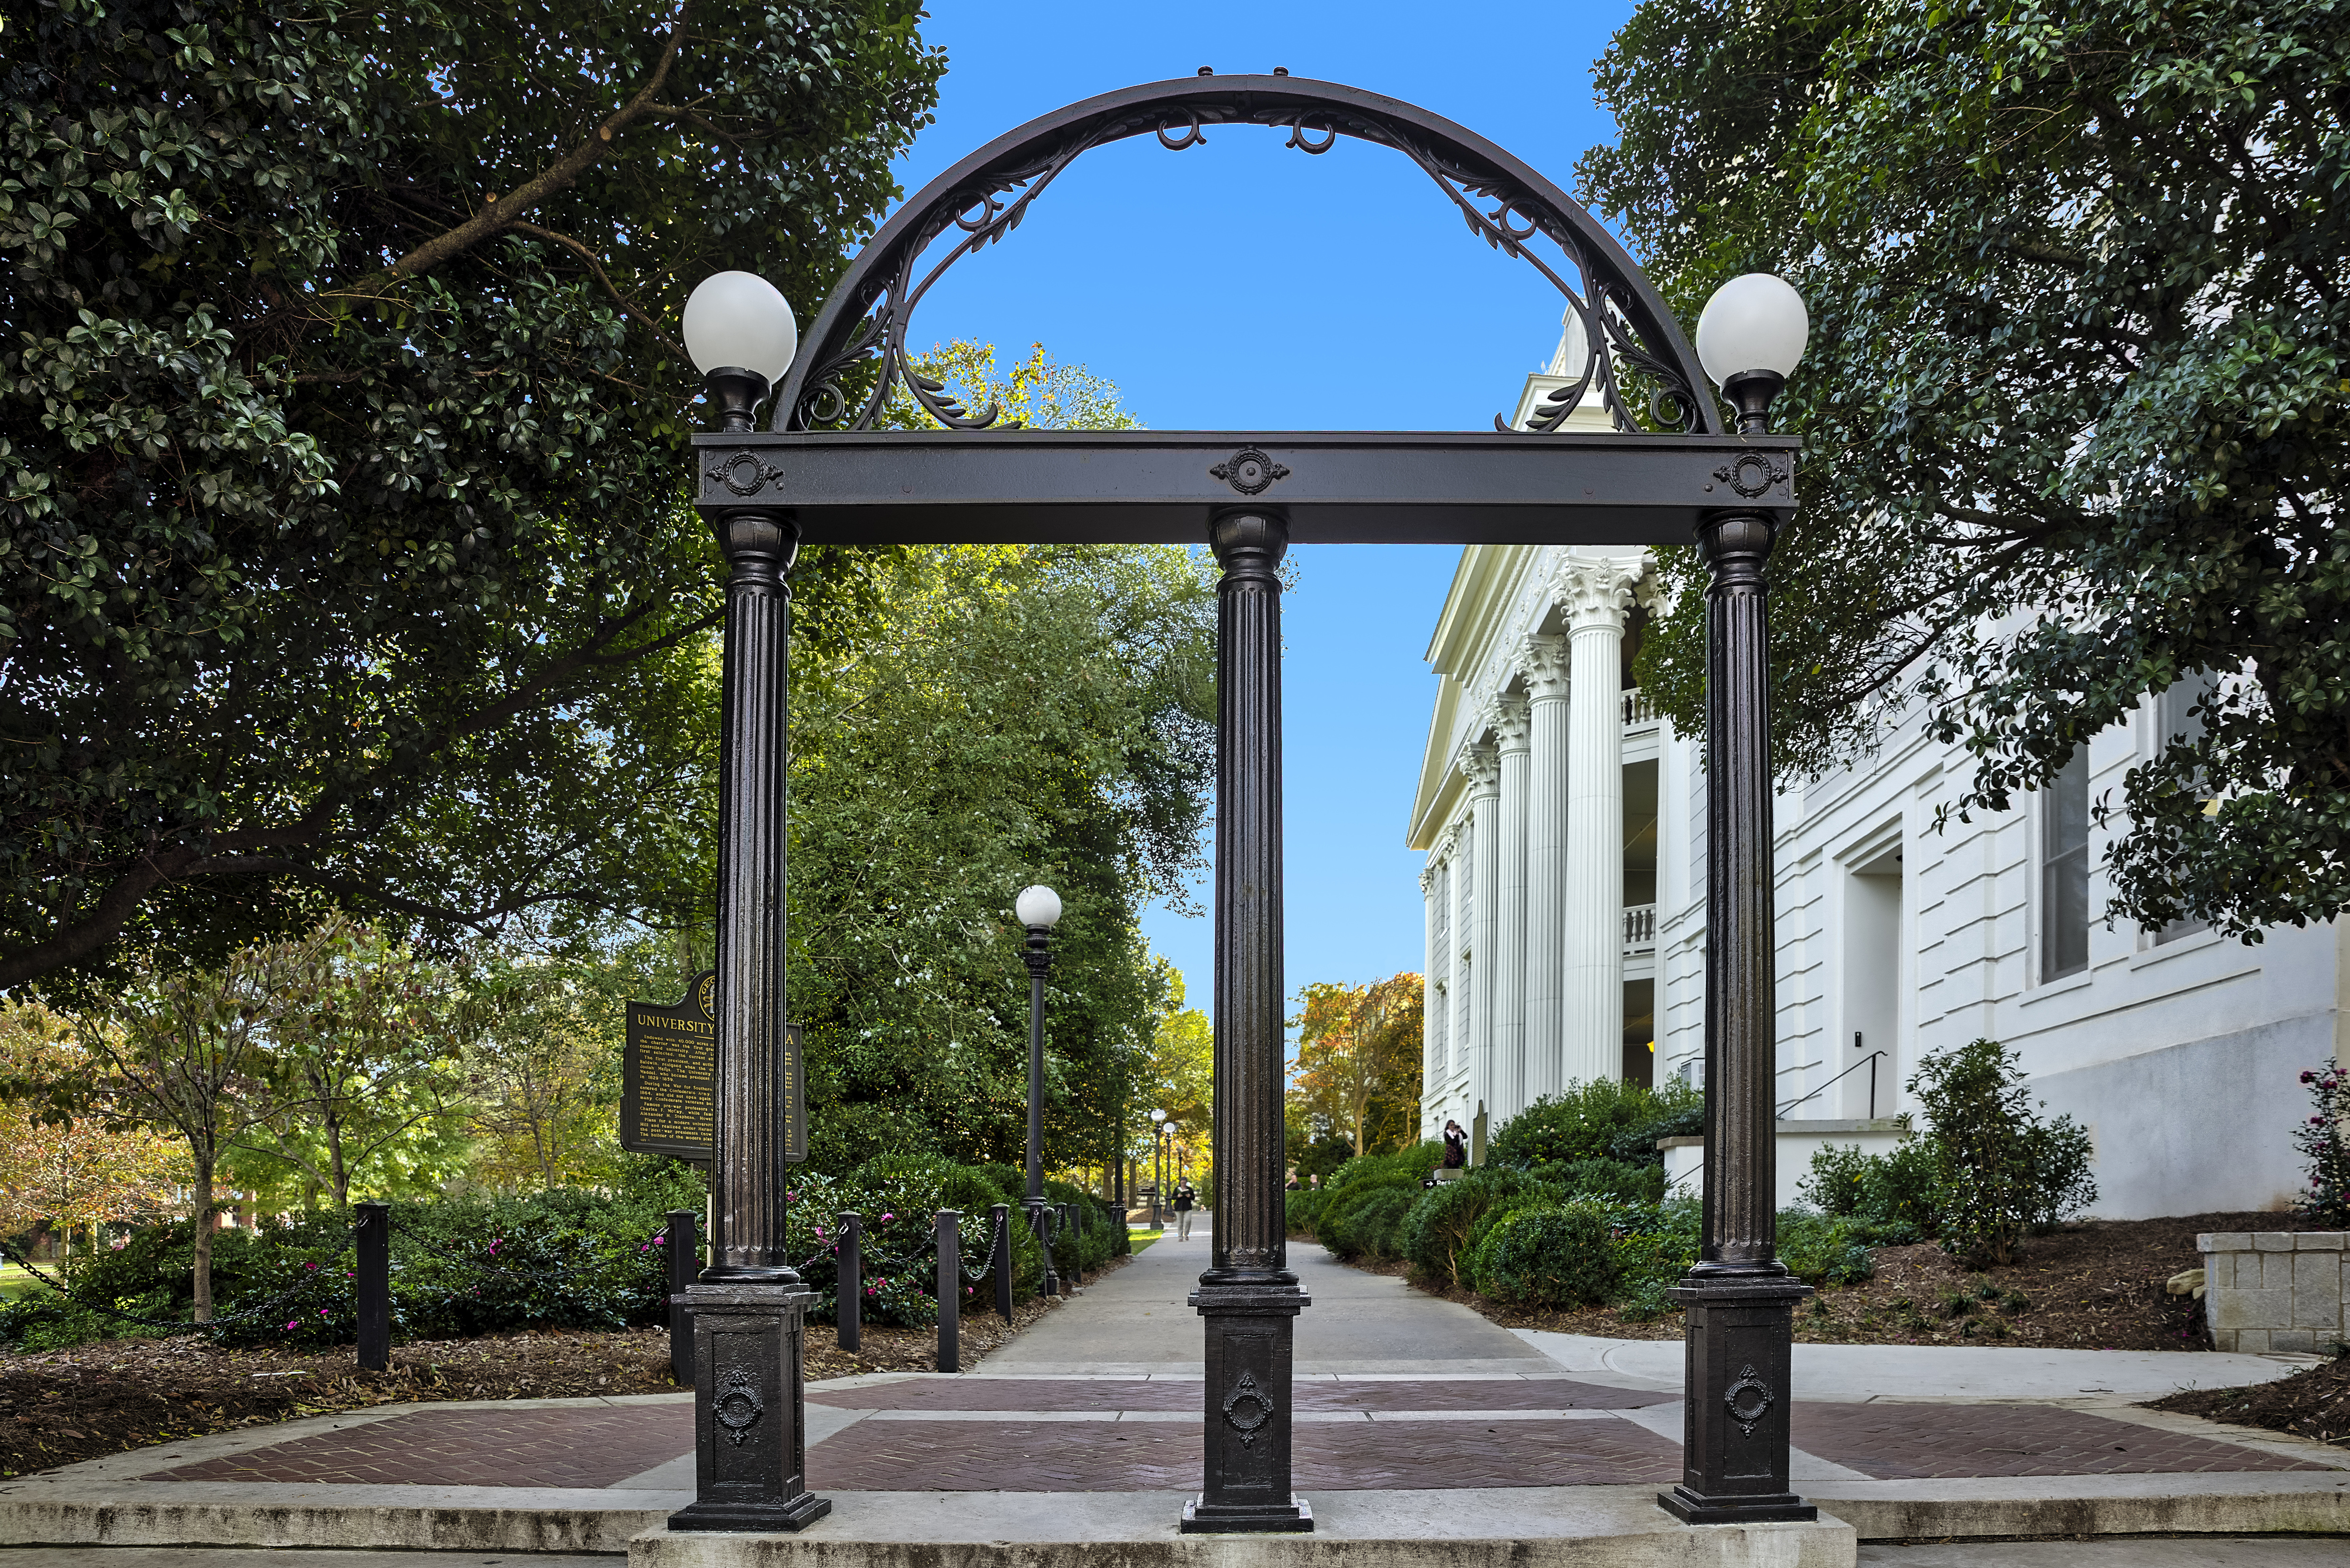 The Georgia Arch at the University of Georgia in Athens.